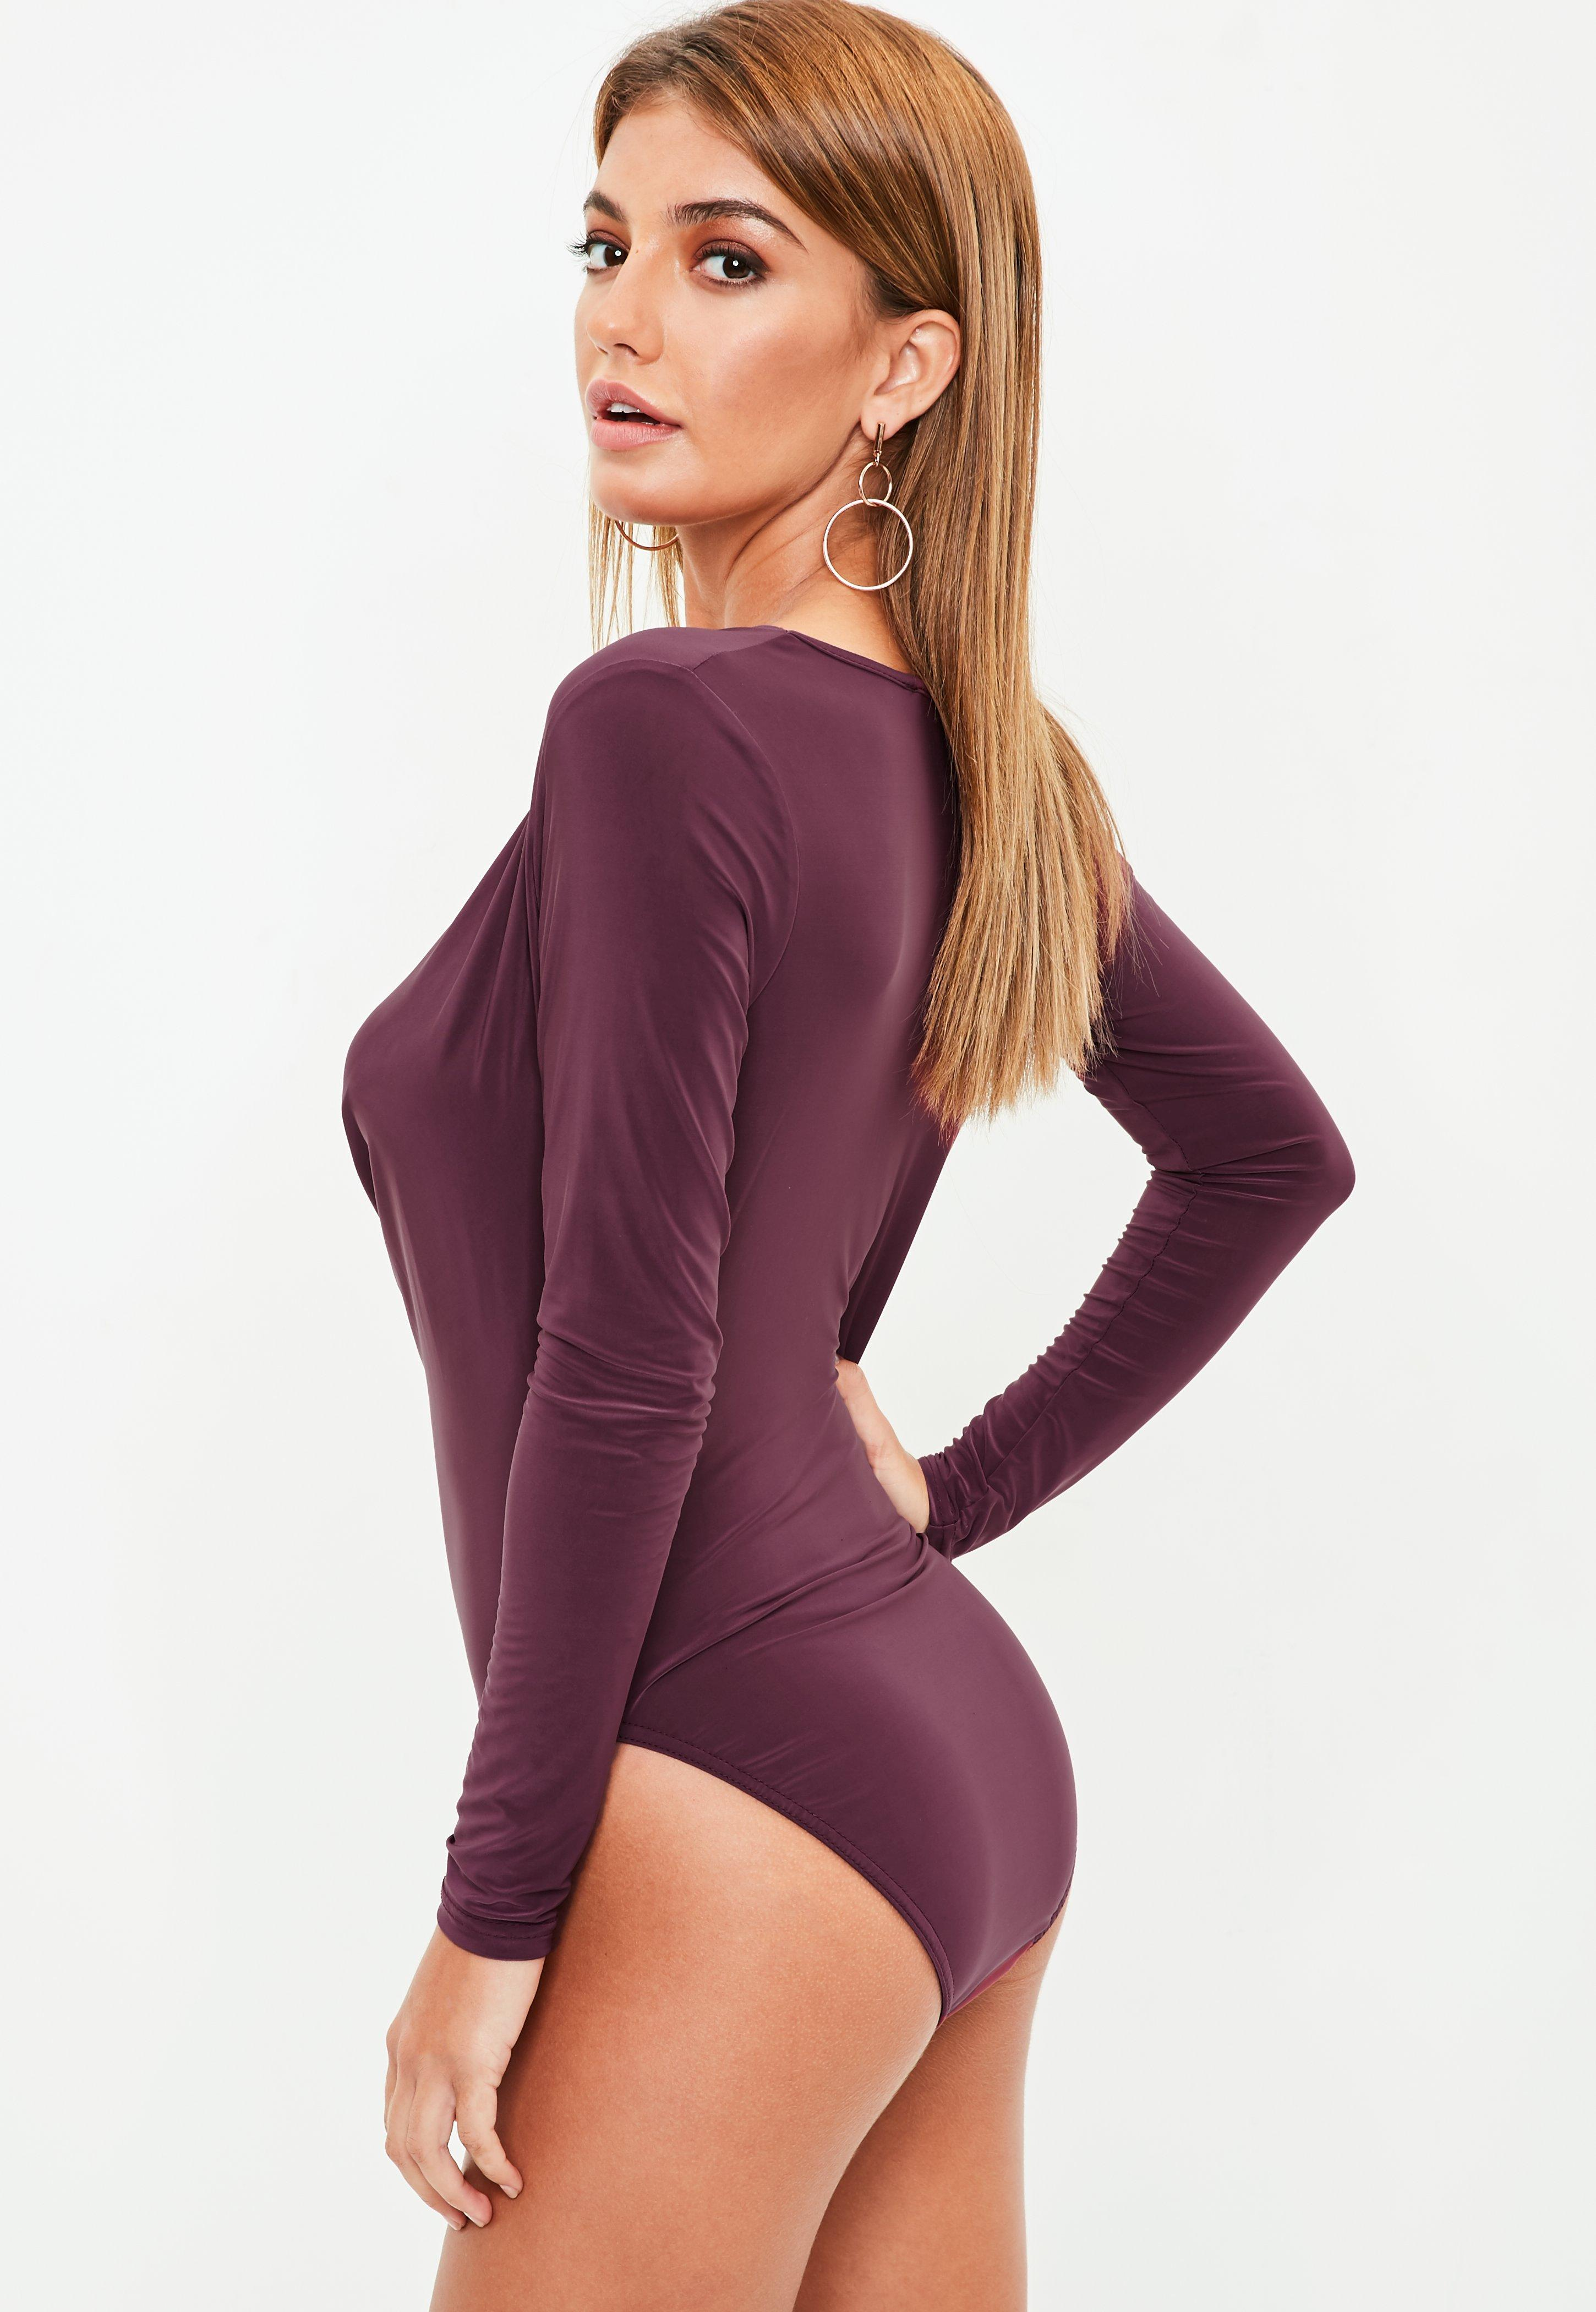 977c55e5ae Missguided Purple Cowl Neck Slinky Bodysuit in Purple - Lyst